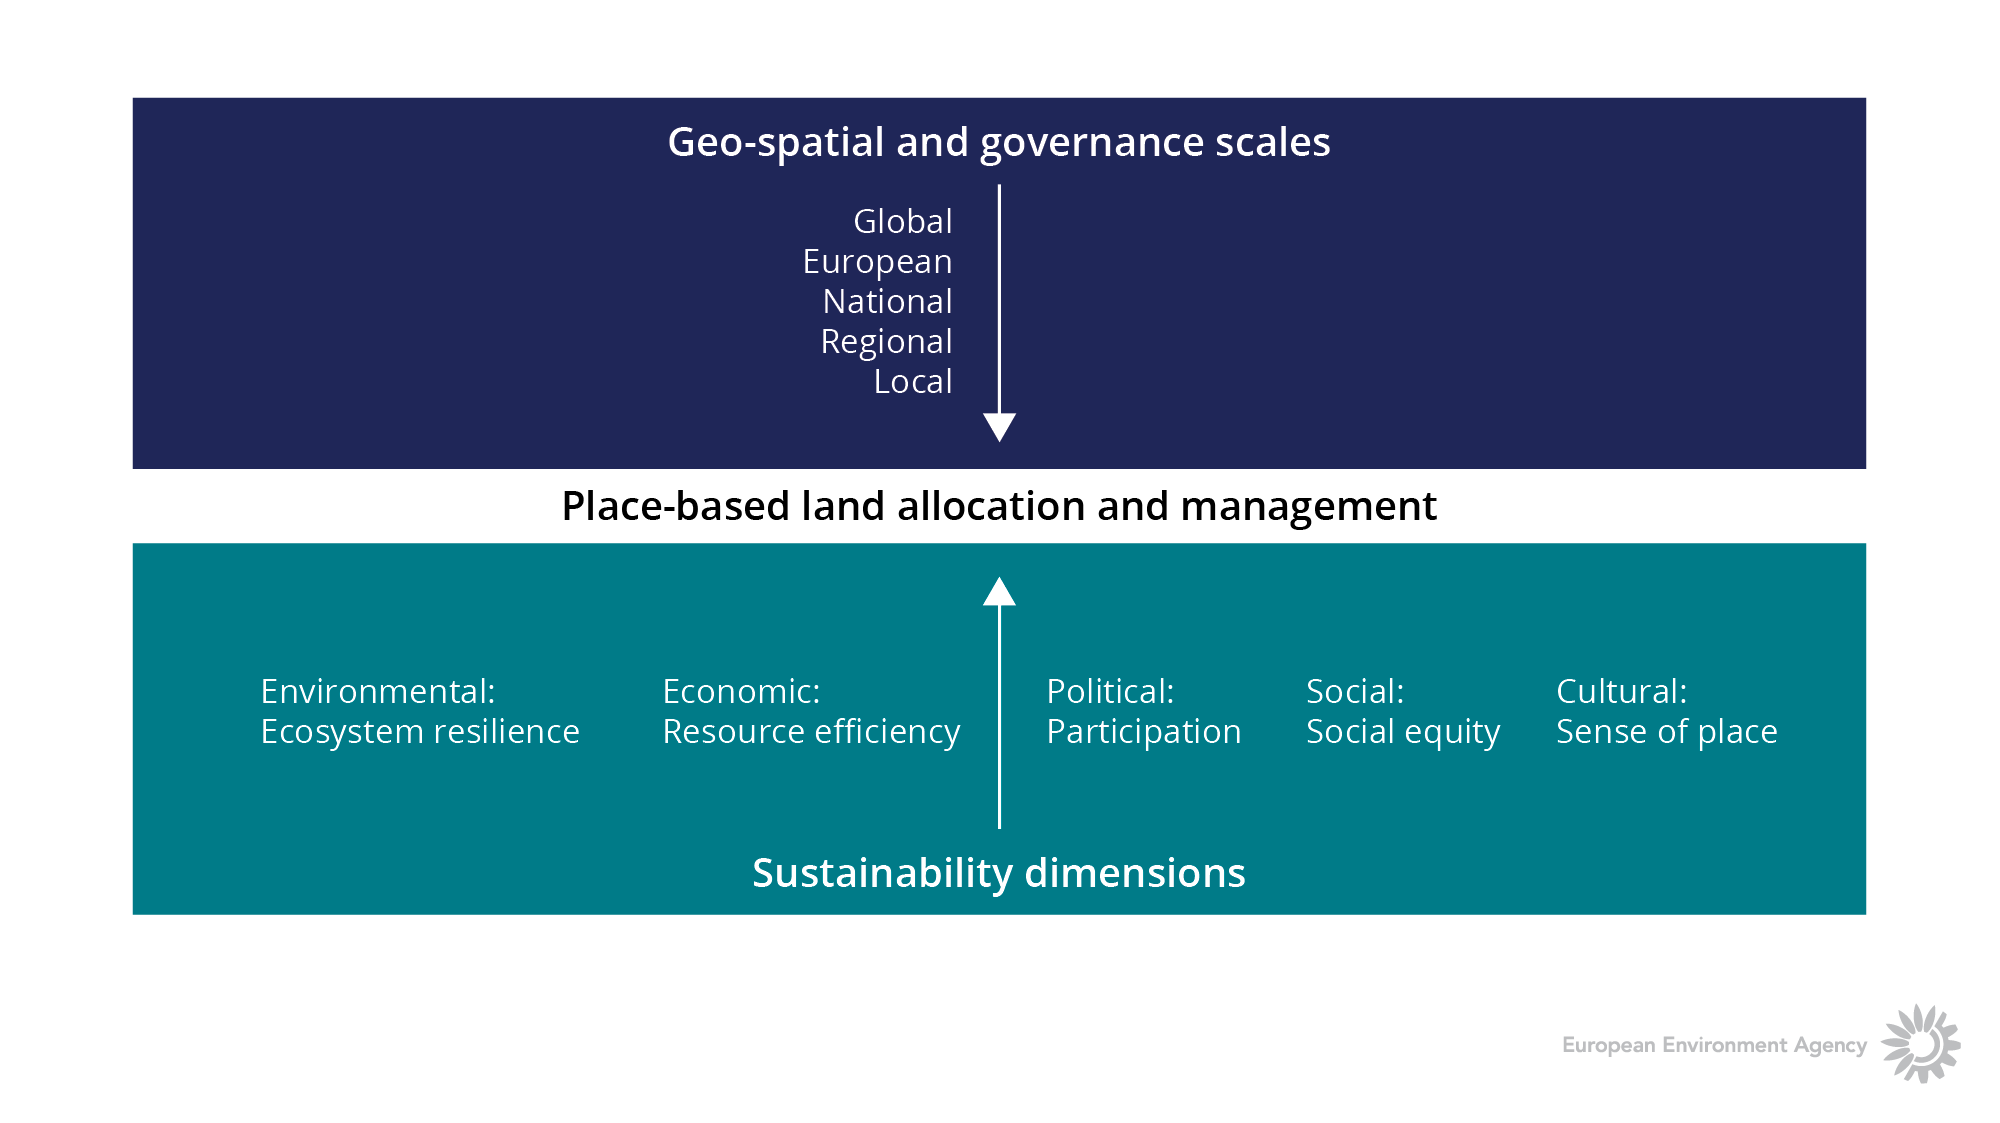 Dynamics in the land system guiding land resource allocation and management